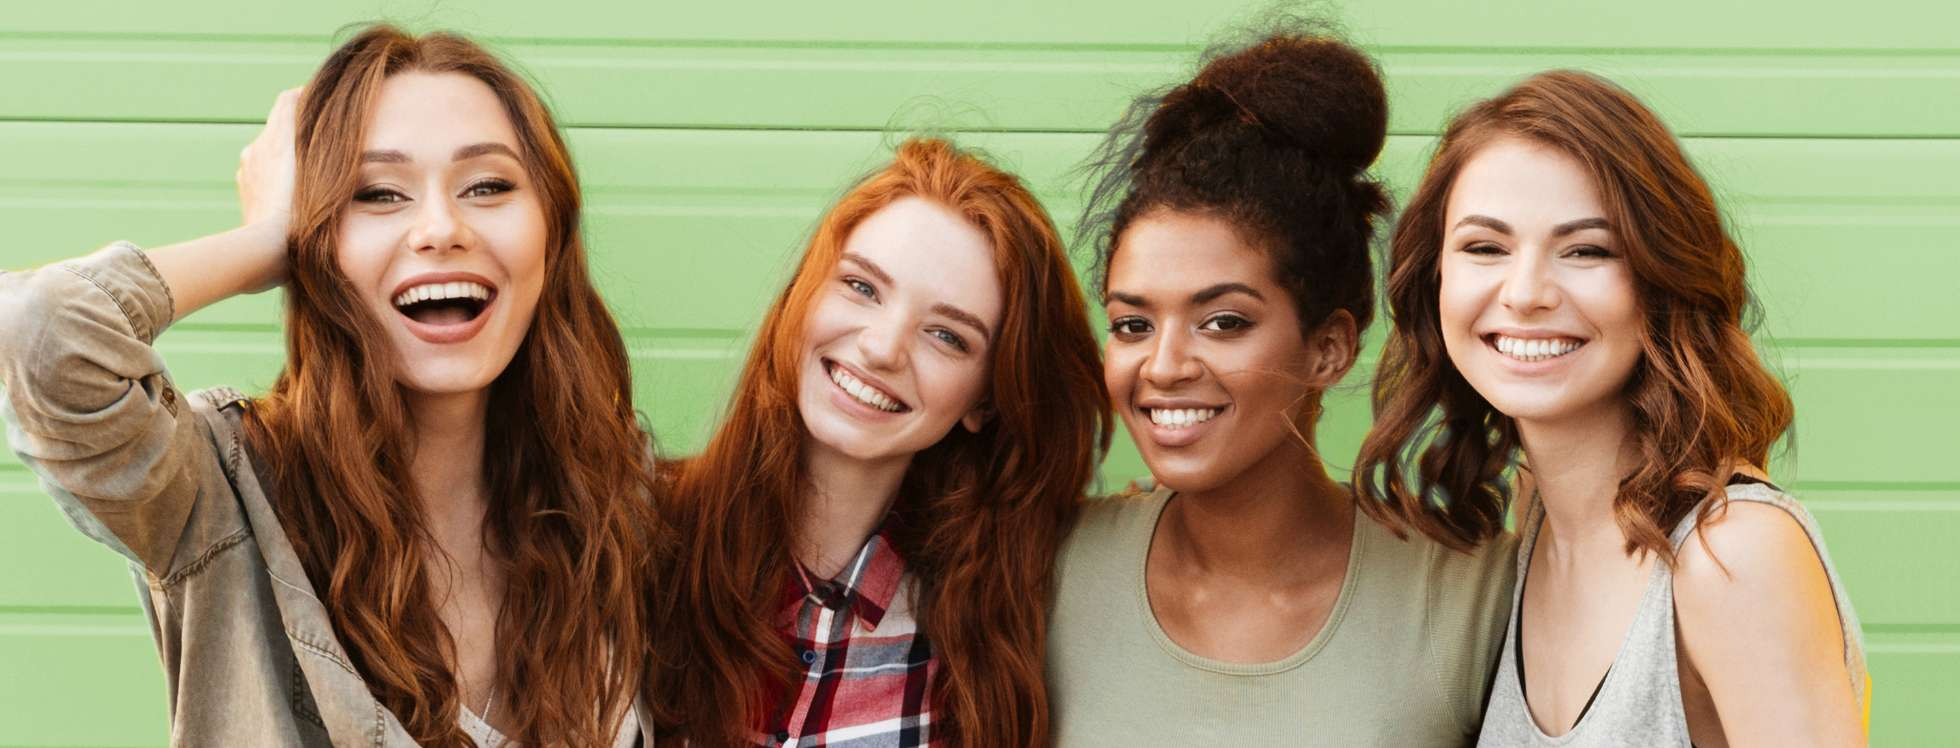 Four smiling girls in front of a green background